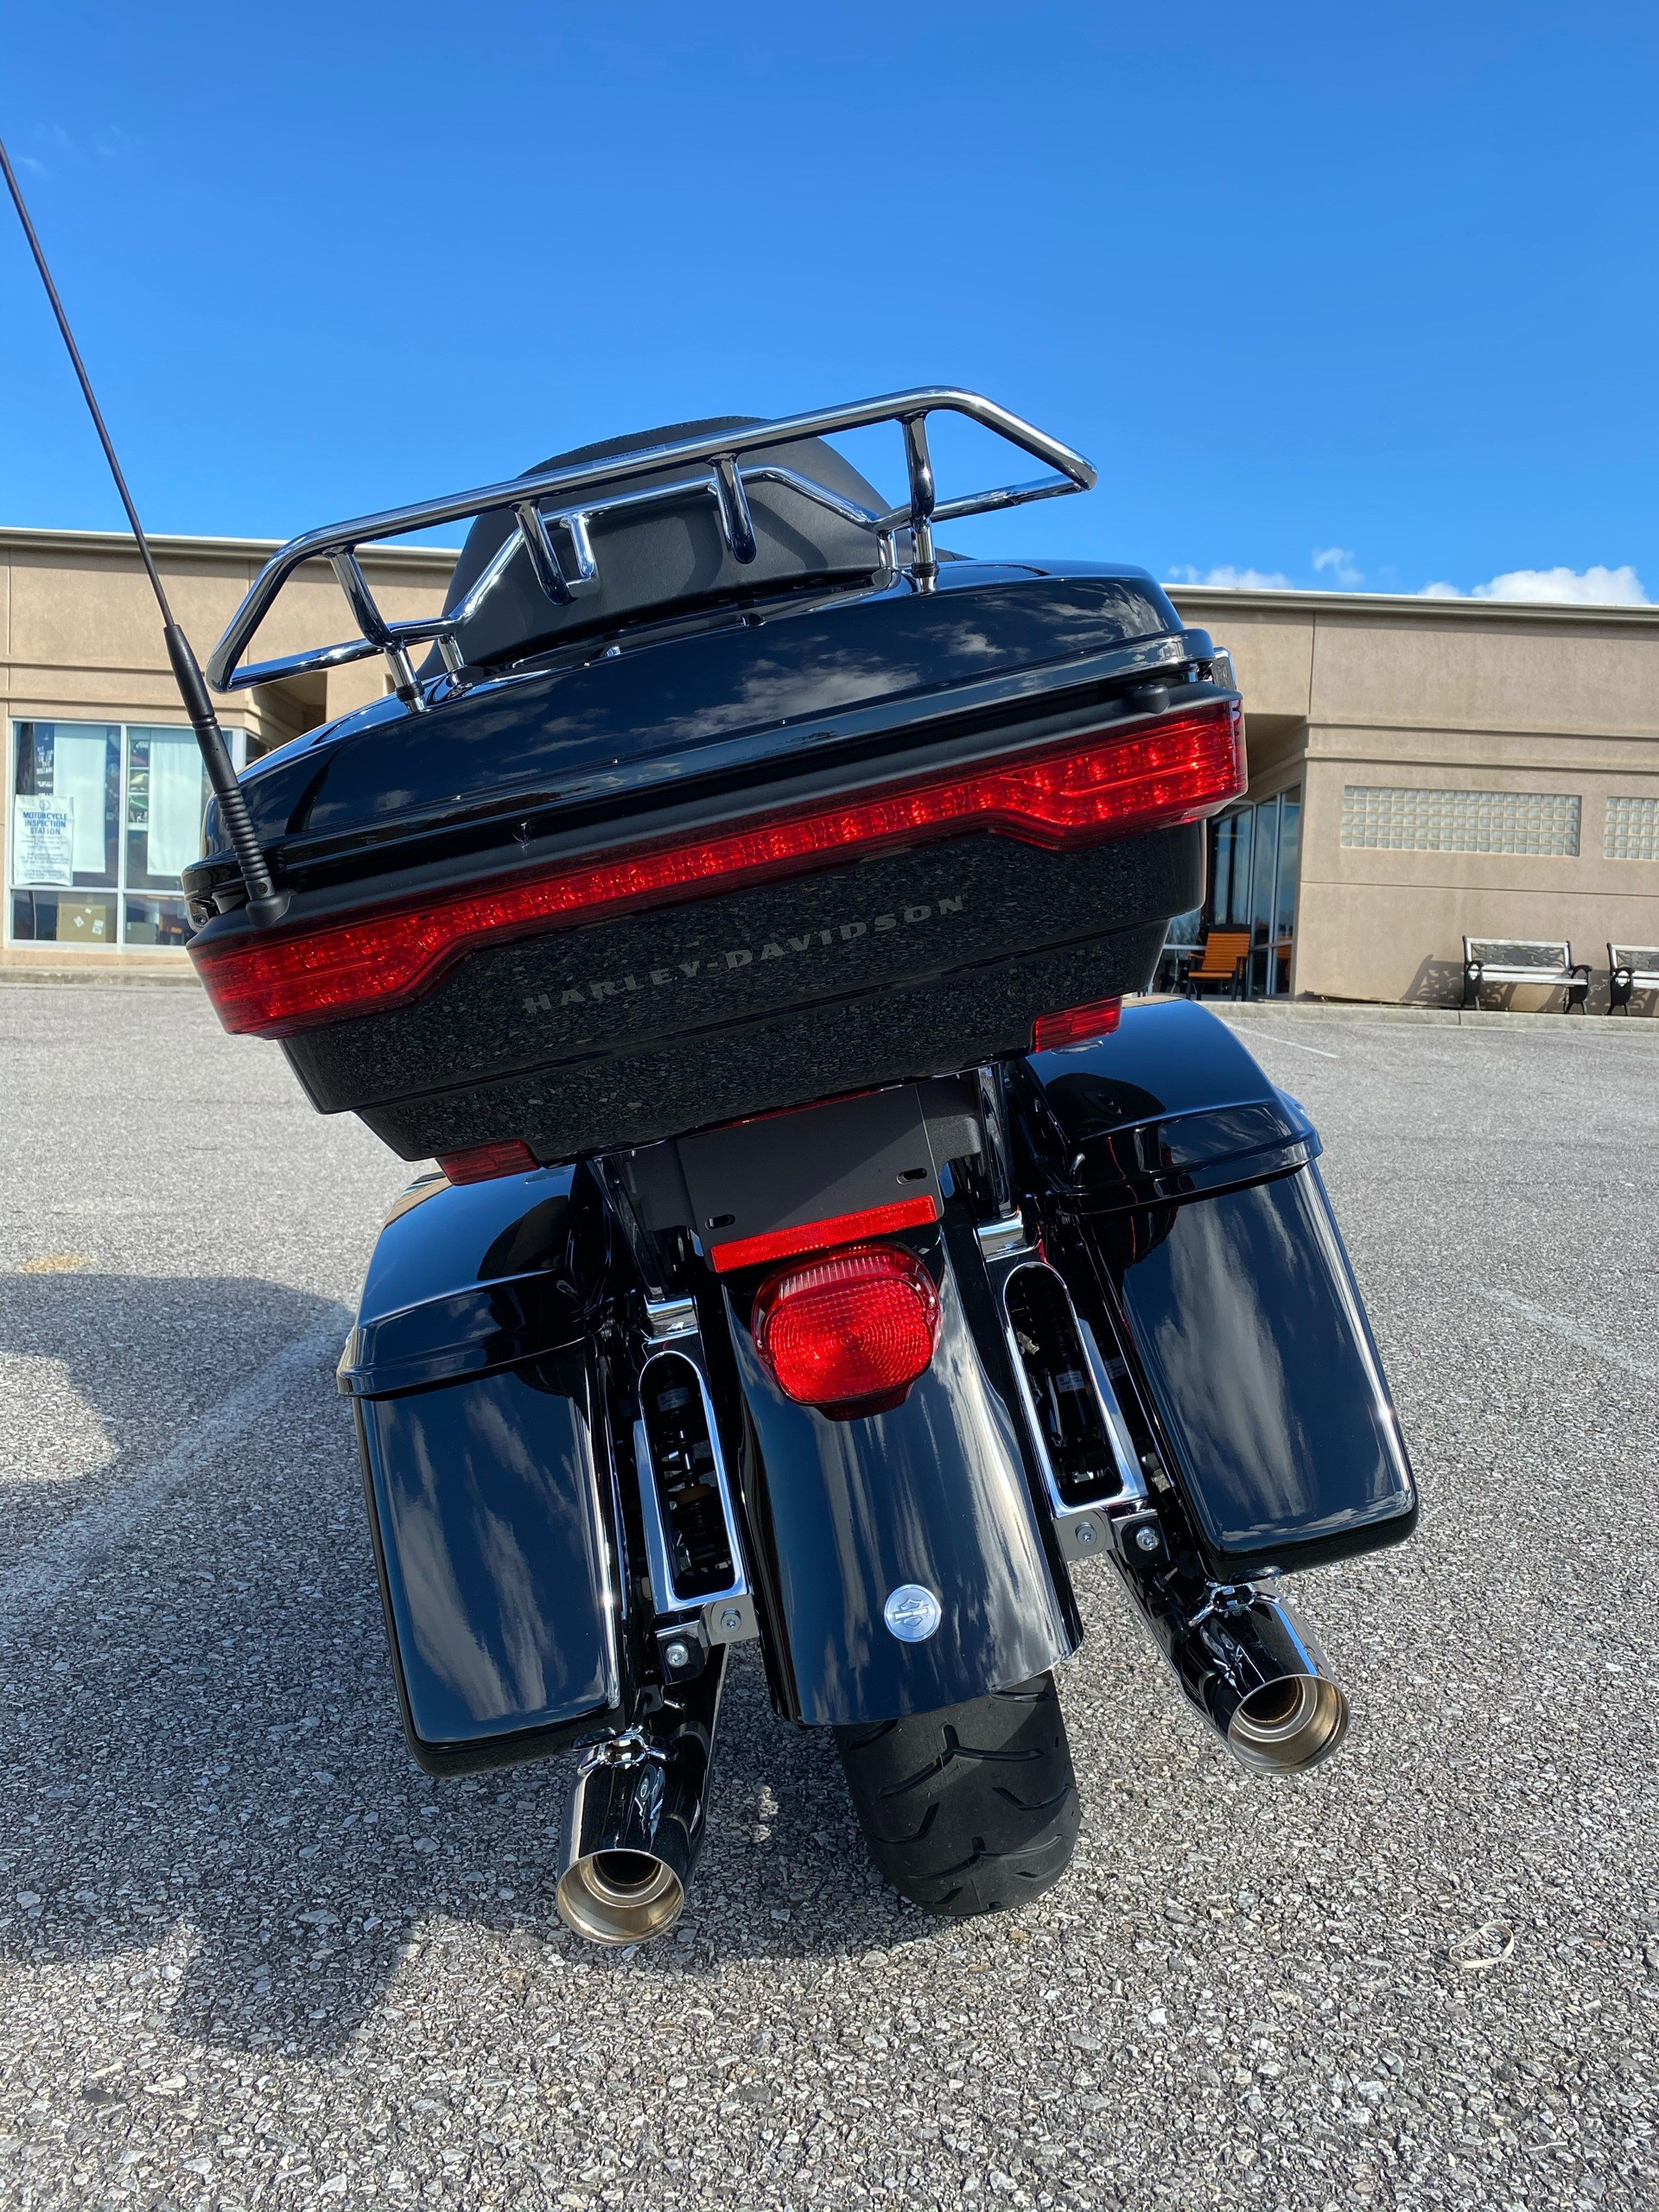 2020 Harley-Davidson Road Glide Limited in Roanoke, Virginia - Photo 4